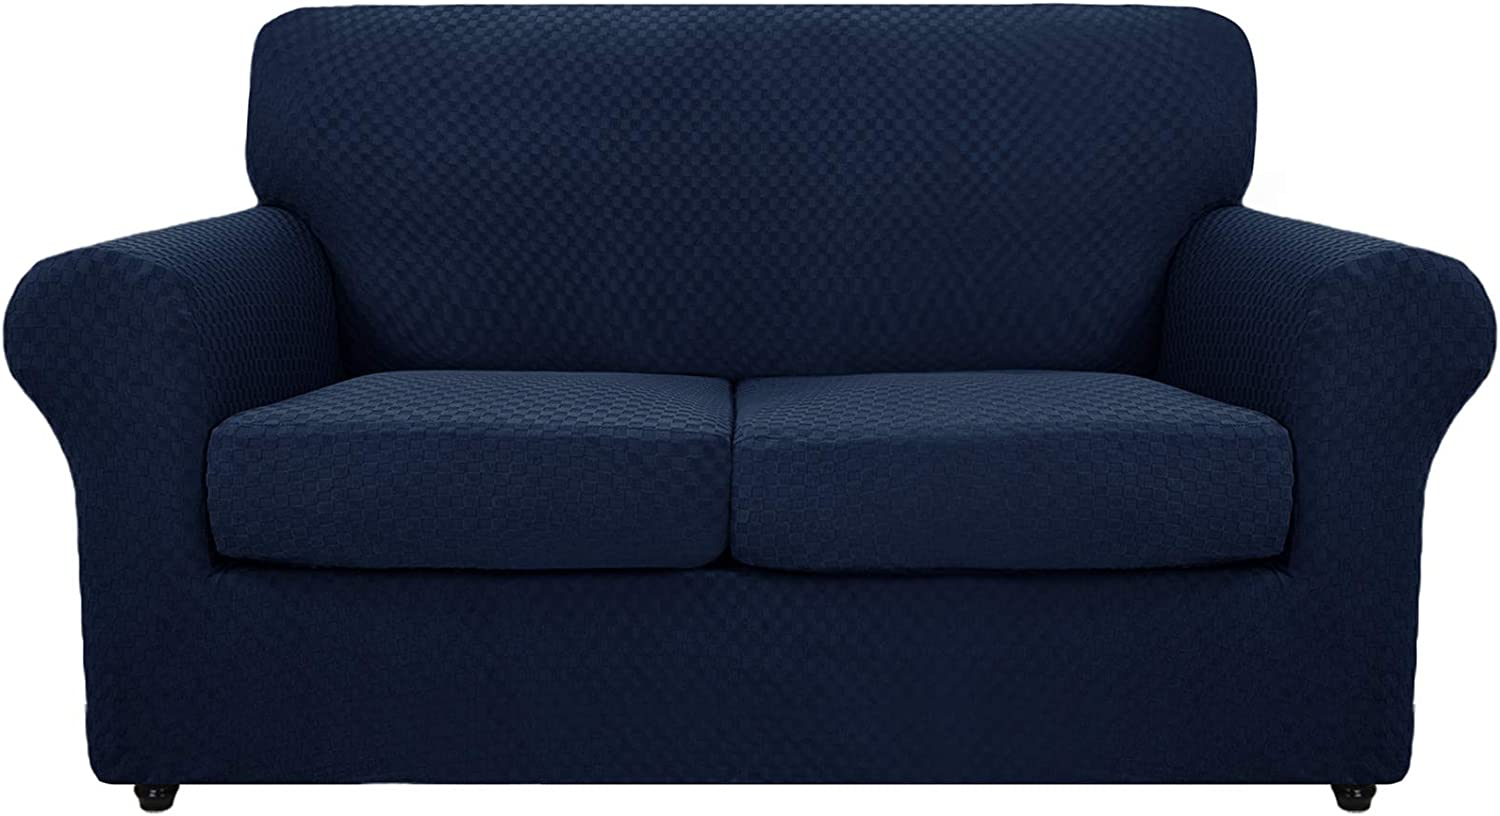 MAXIJIN 3 Piece Newest Jacquard Couch Covers for 2 Cushion Couch Stretch Non Slip Love Seat Couch Cover for Dogs Pet Friendly Elastic Furniture Protector Loveseat Slipcovers (Loveseat, Navy Blue)